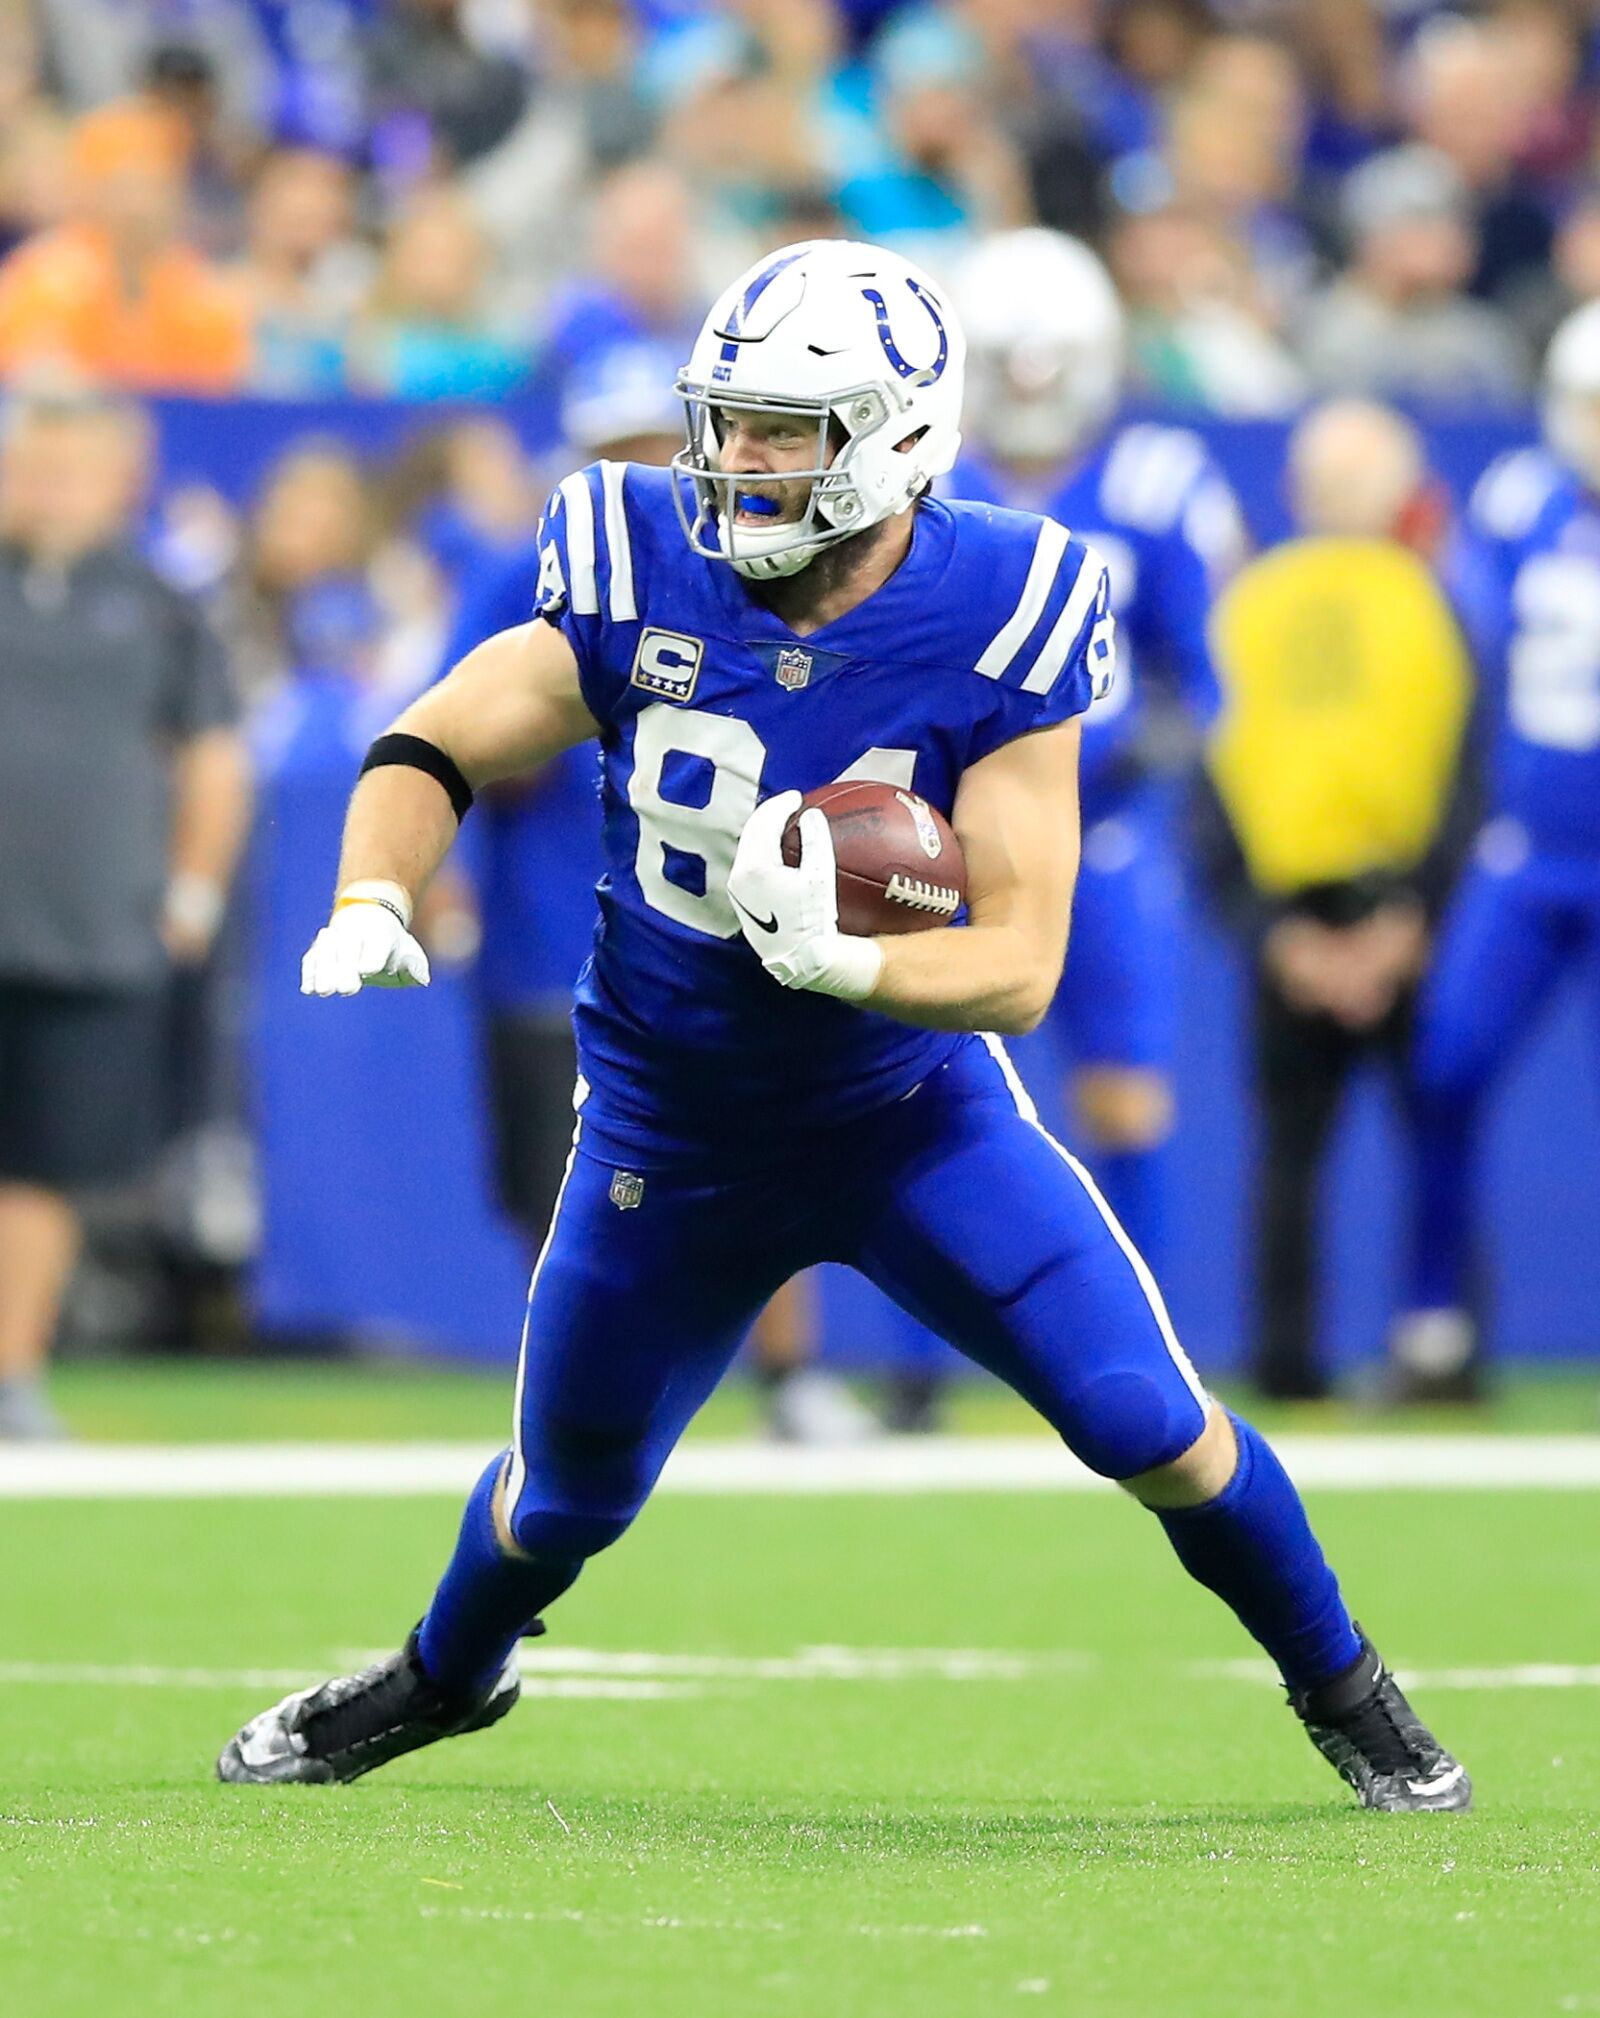 Injured players who will step up for the Colts